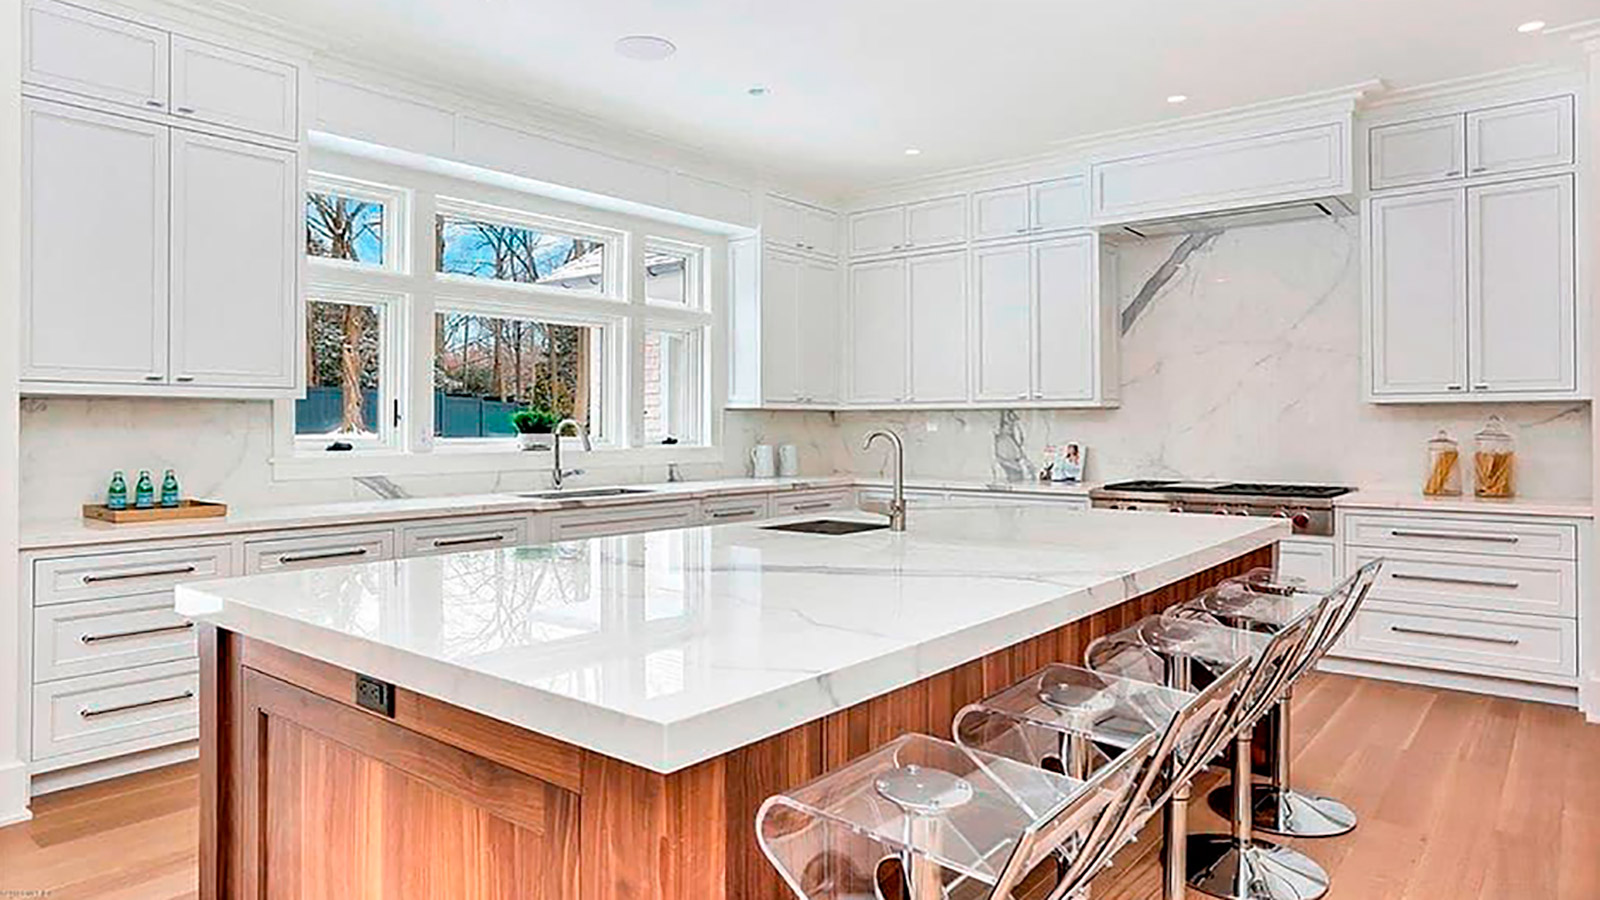 Using marble in the kitchen